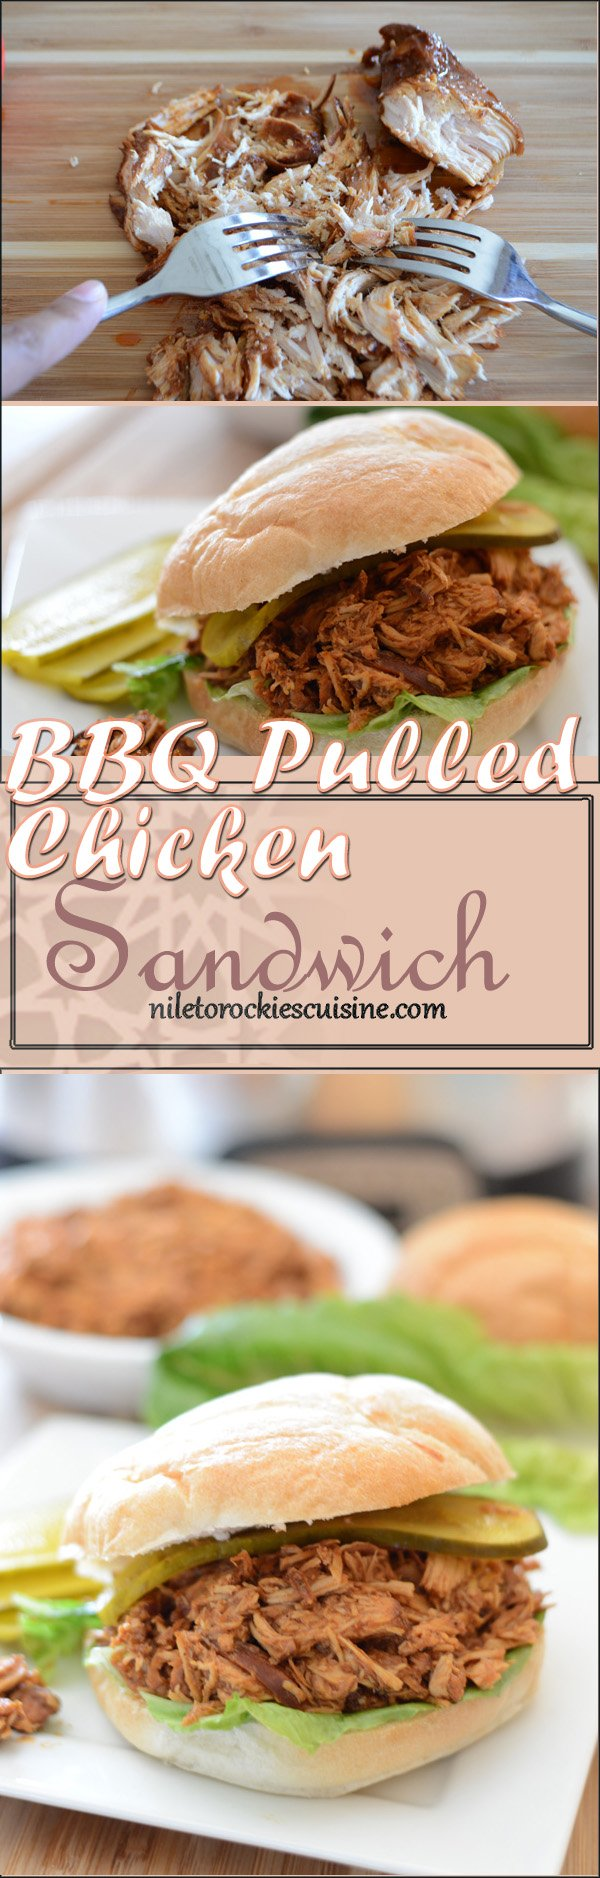 An easy and quick bbq pulled chicken sandwiches recipe for your next party, throw everything in the slow cooker and let it do its magic.